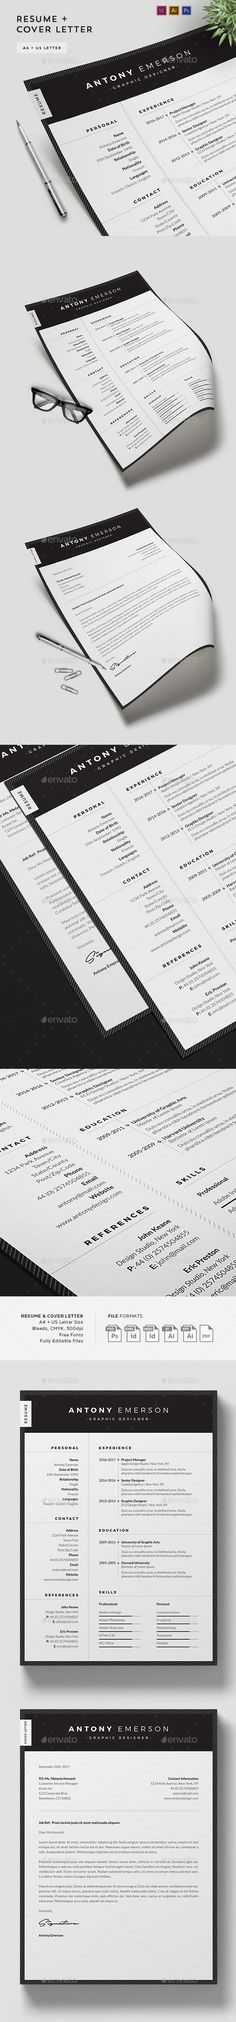 Resume/CV Template  — PSD Template #professional #black • Download ➝ https://graphicriver.net/item/resumecv-template/18376268?ref=pxcr